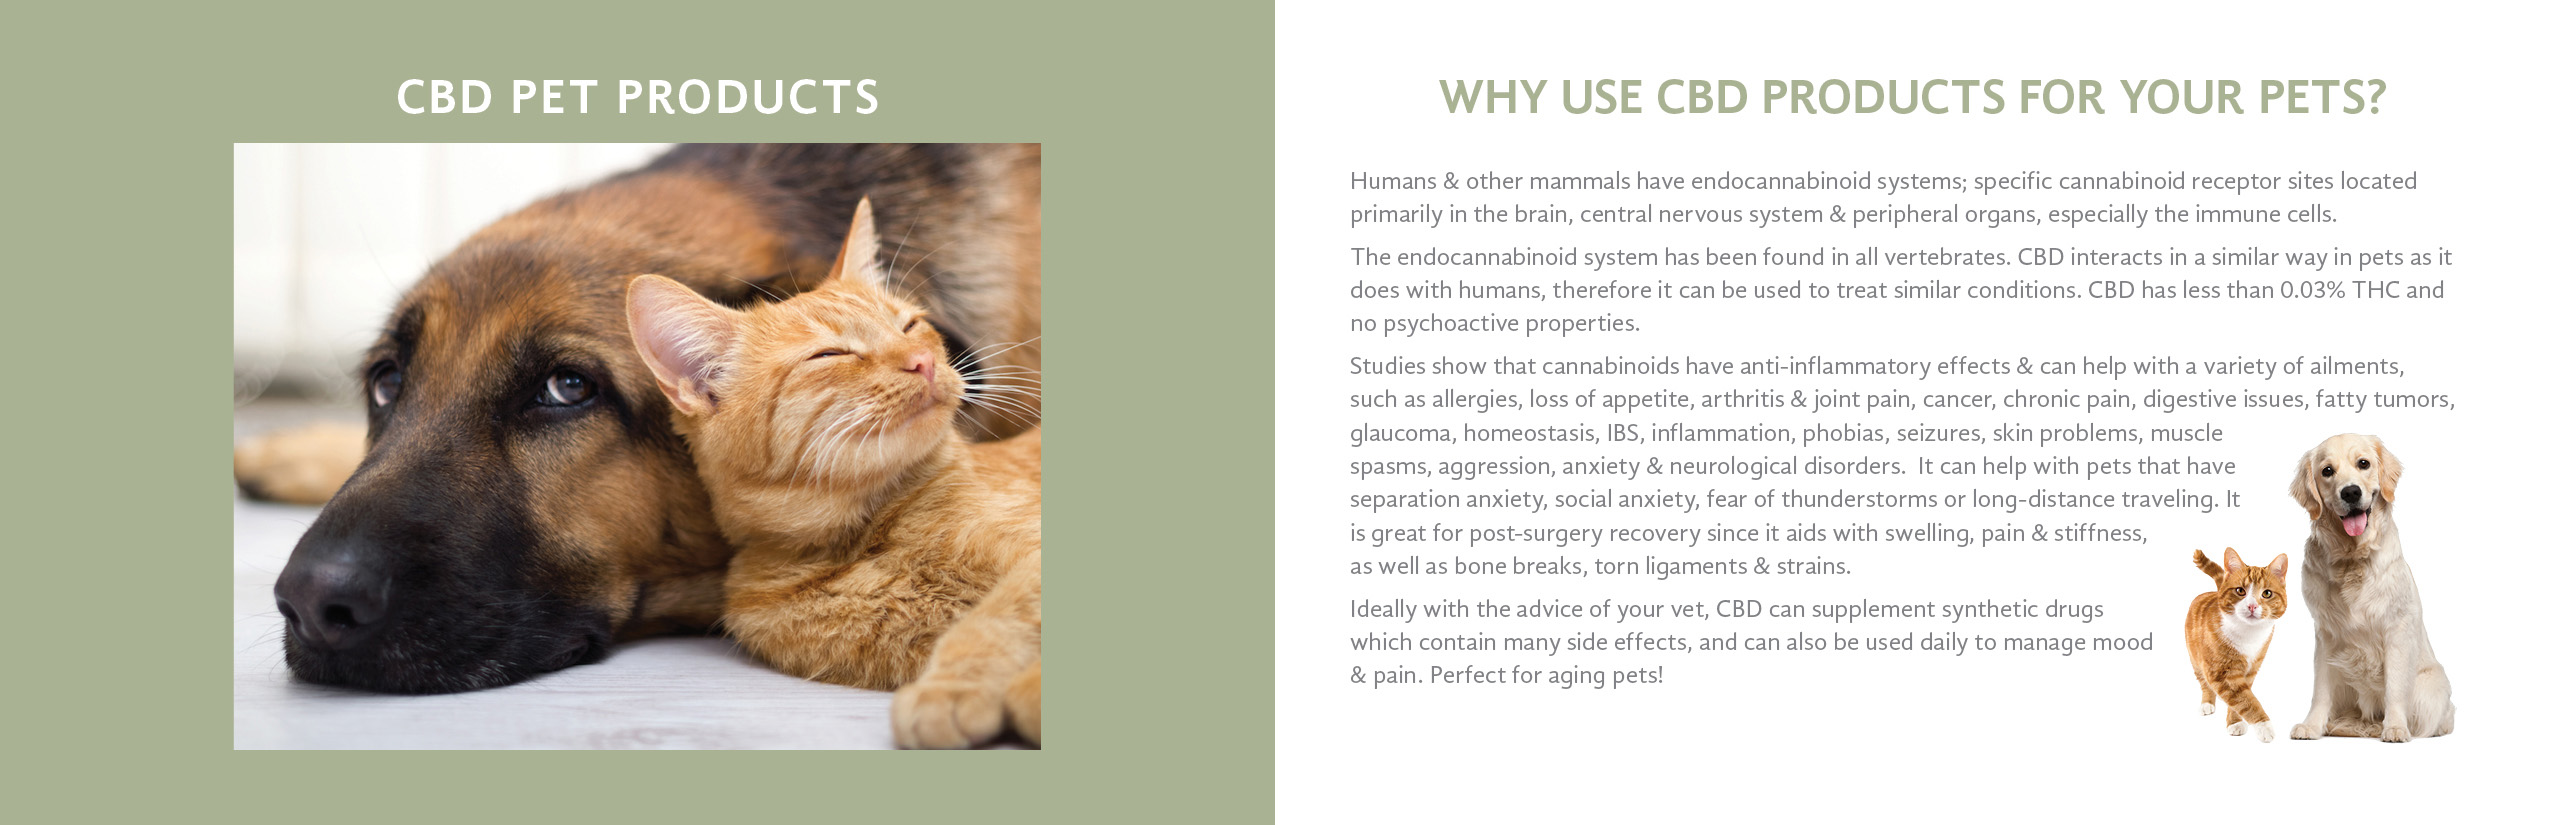 Hemp Cbd Oil for Pets in Calgary Alberta